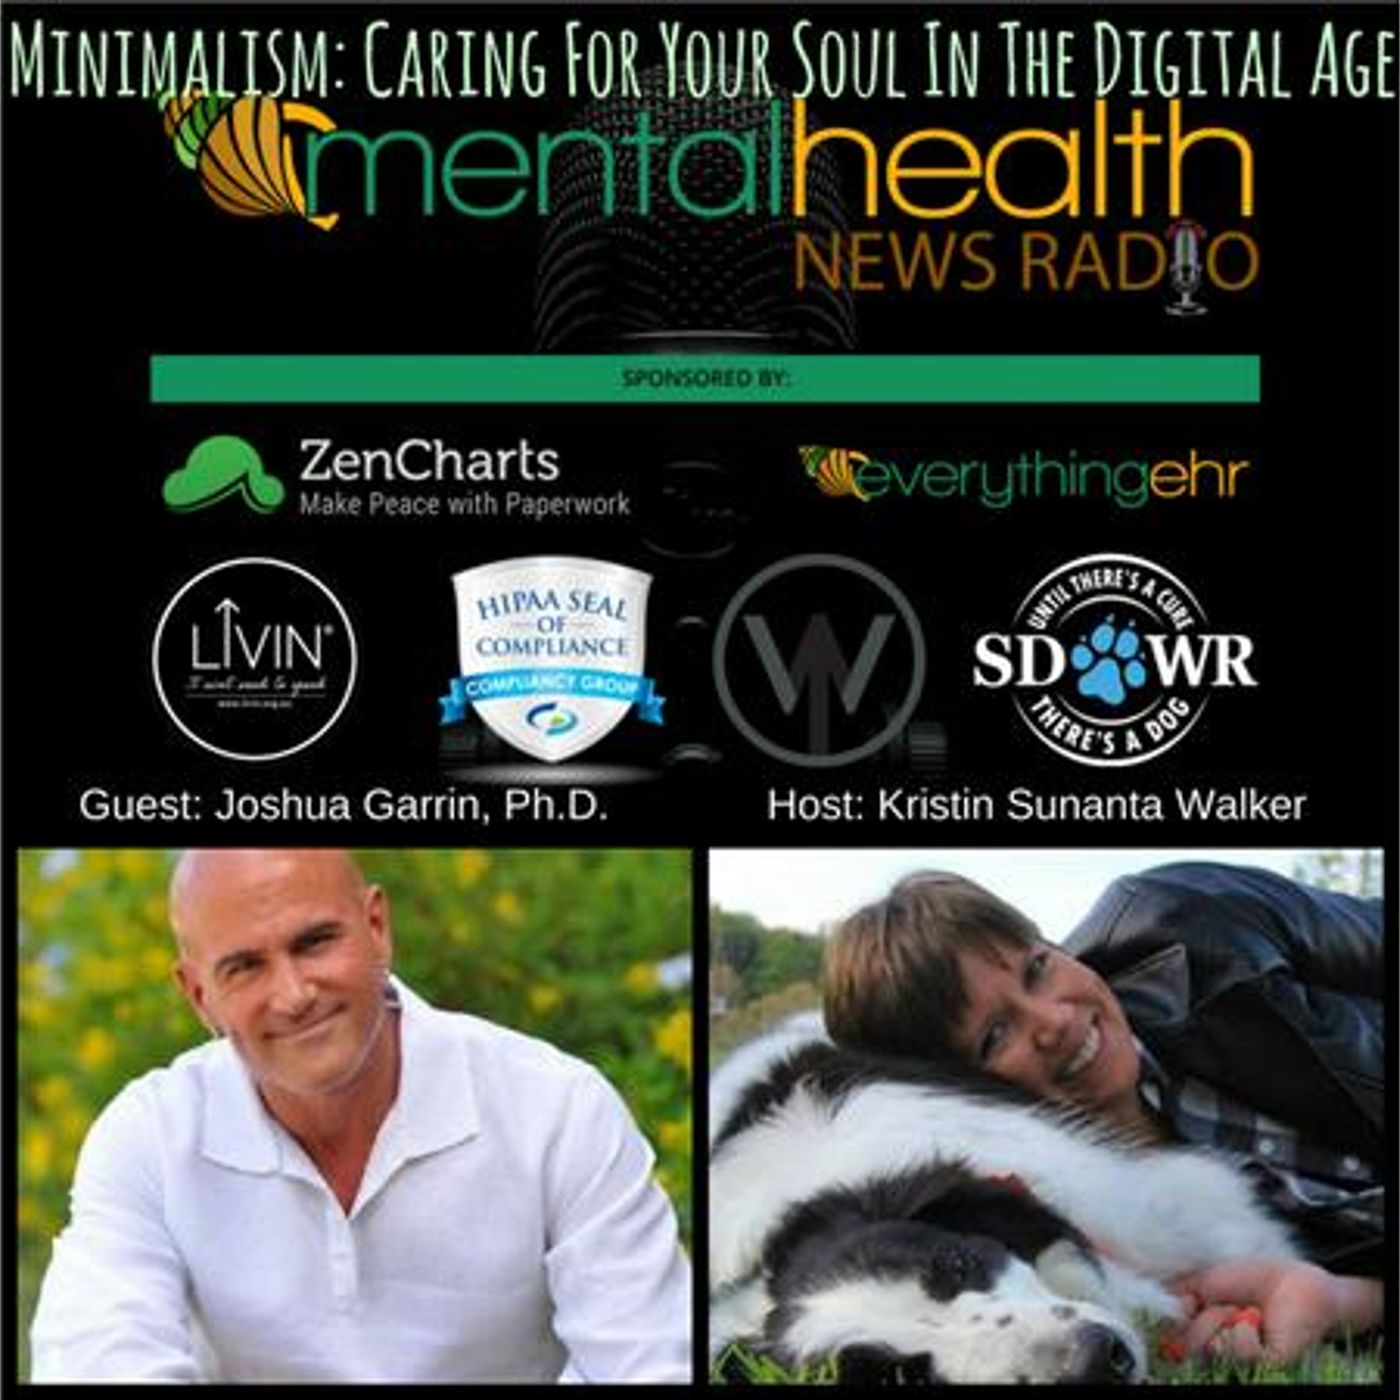 Mental Health News Radio - Minimalism: Caring For Your Soul In The Digital Age With Joshua Garrin, Ph.D.